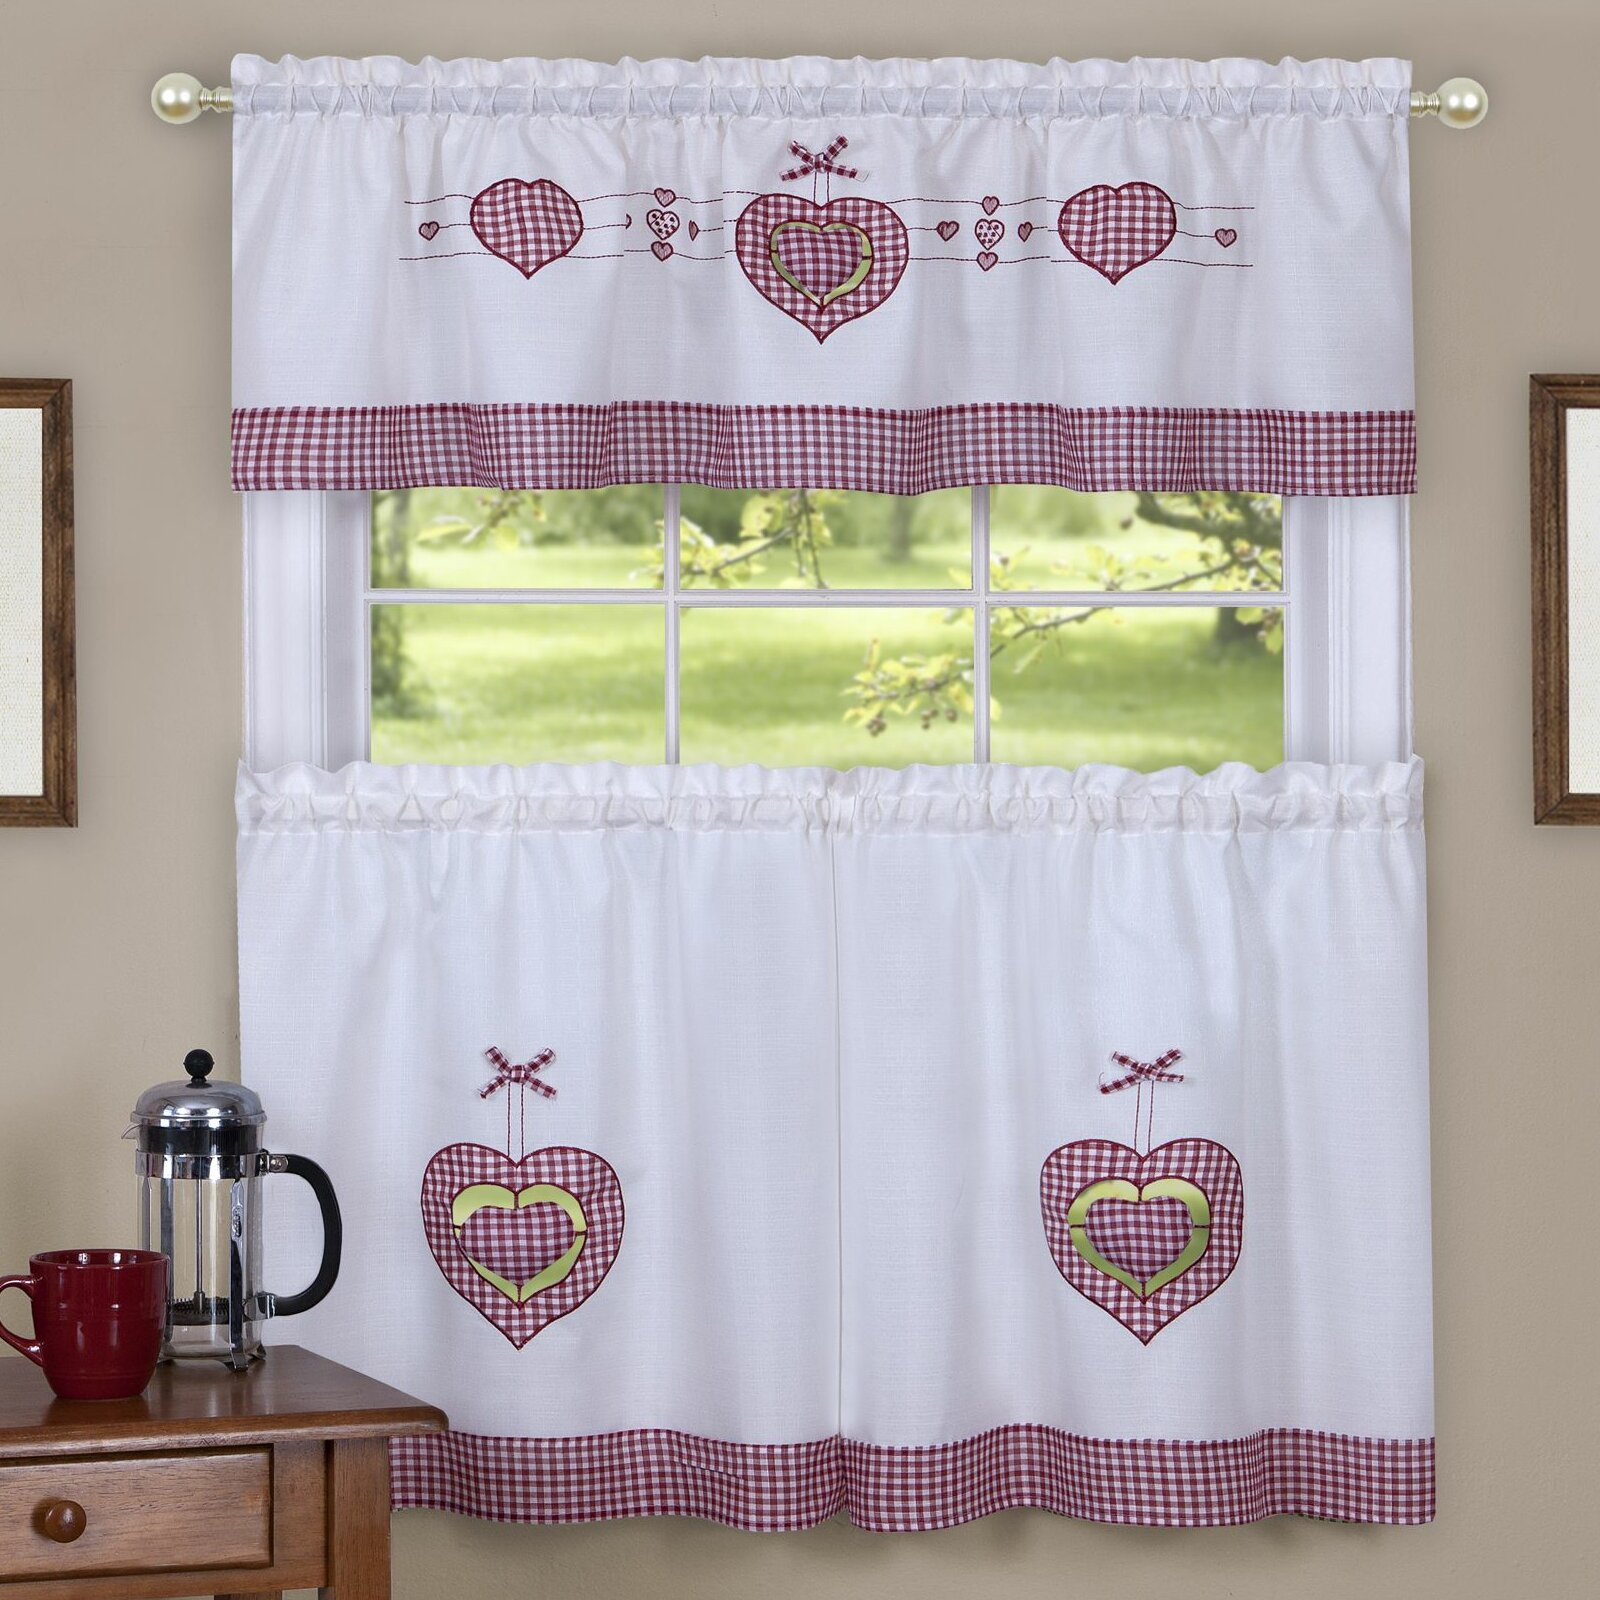 beautiful Pink Gingham Valance Part - 5: August Grove Cacia Gingham Hearts Embellished Tier and Valance Kitchen  Curtain Set u0026 Reviews | Wayfair